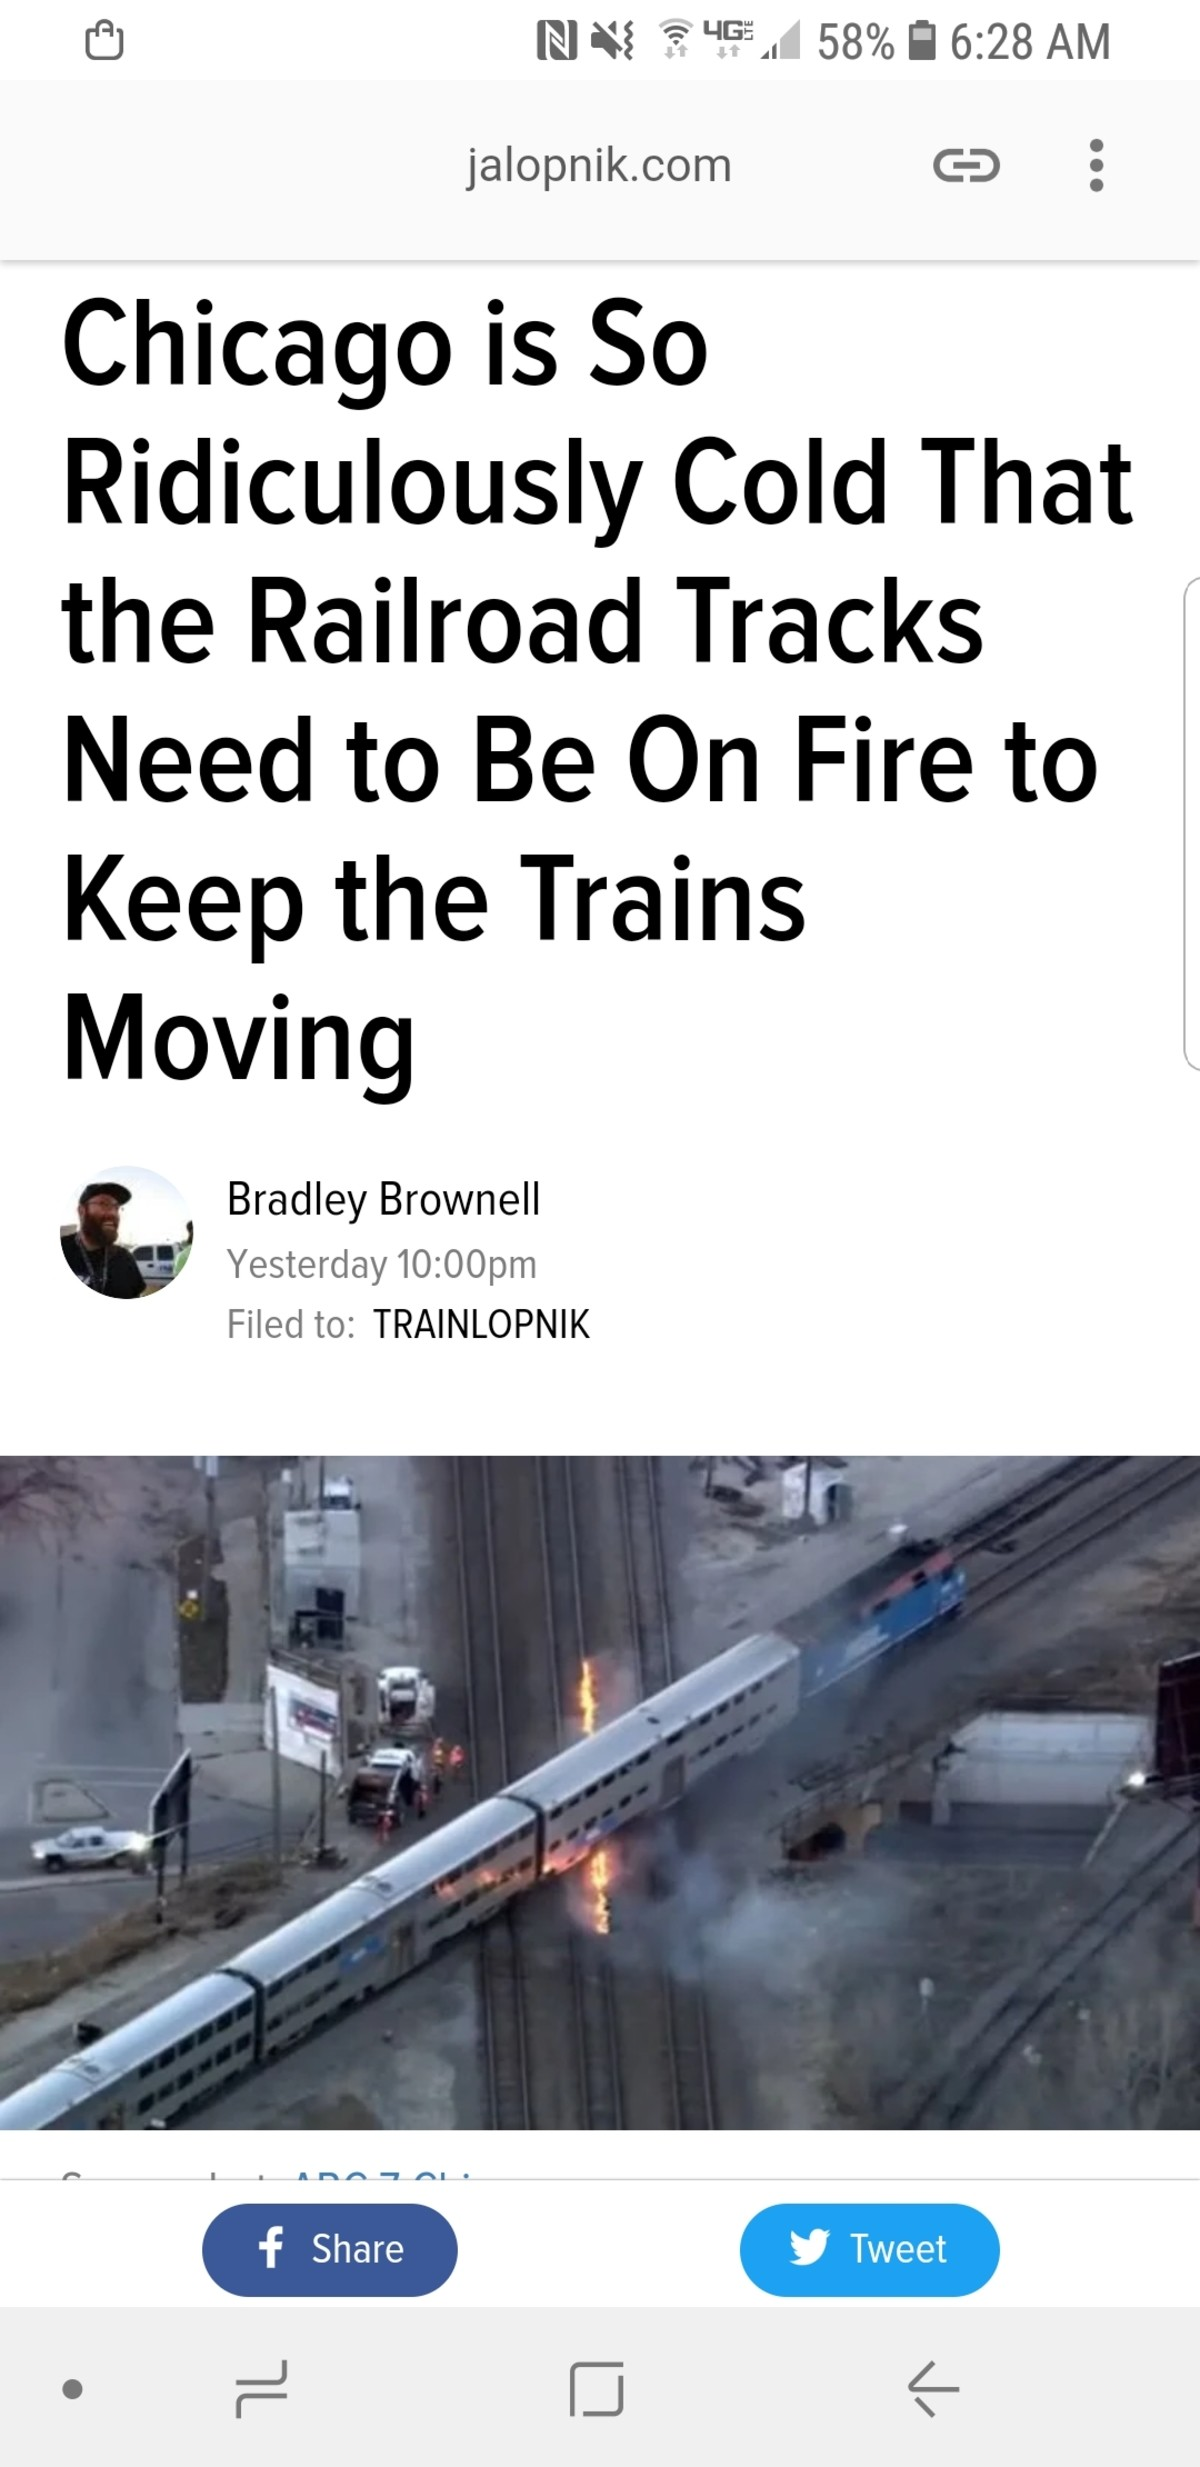 The trolley problem but the tracks are on fire. https://jalopnik.com/chicago-is-so-ridiculously-cold-that-the-railroad-track-1832177510..